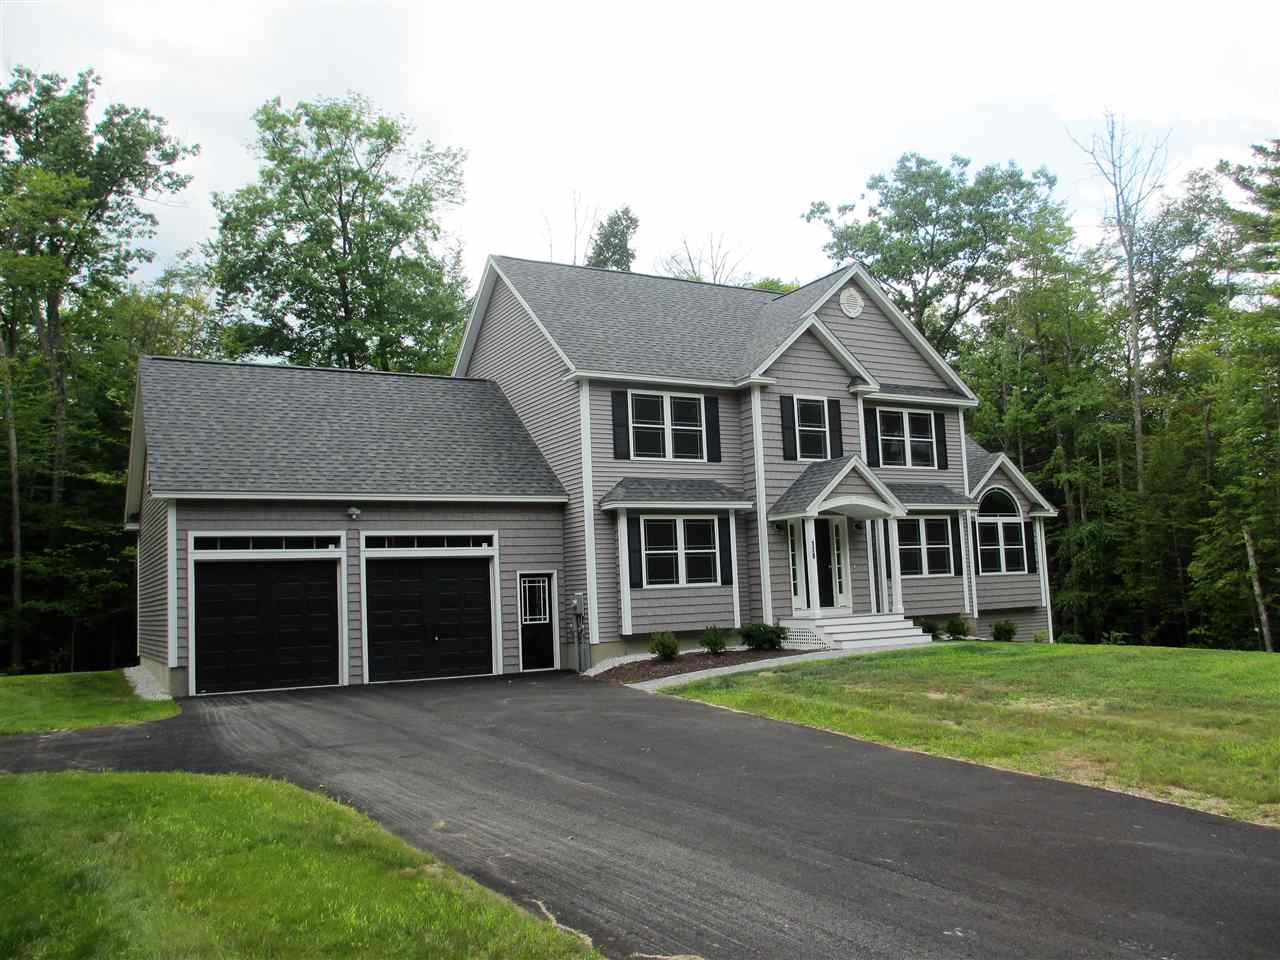 Photo of 179 FISKE Road Concord NH 03301